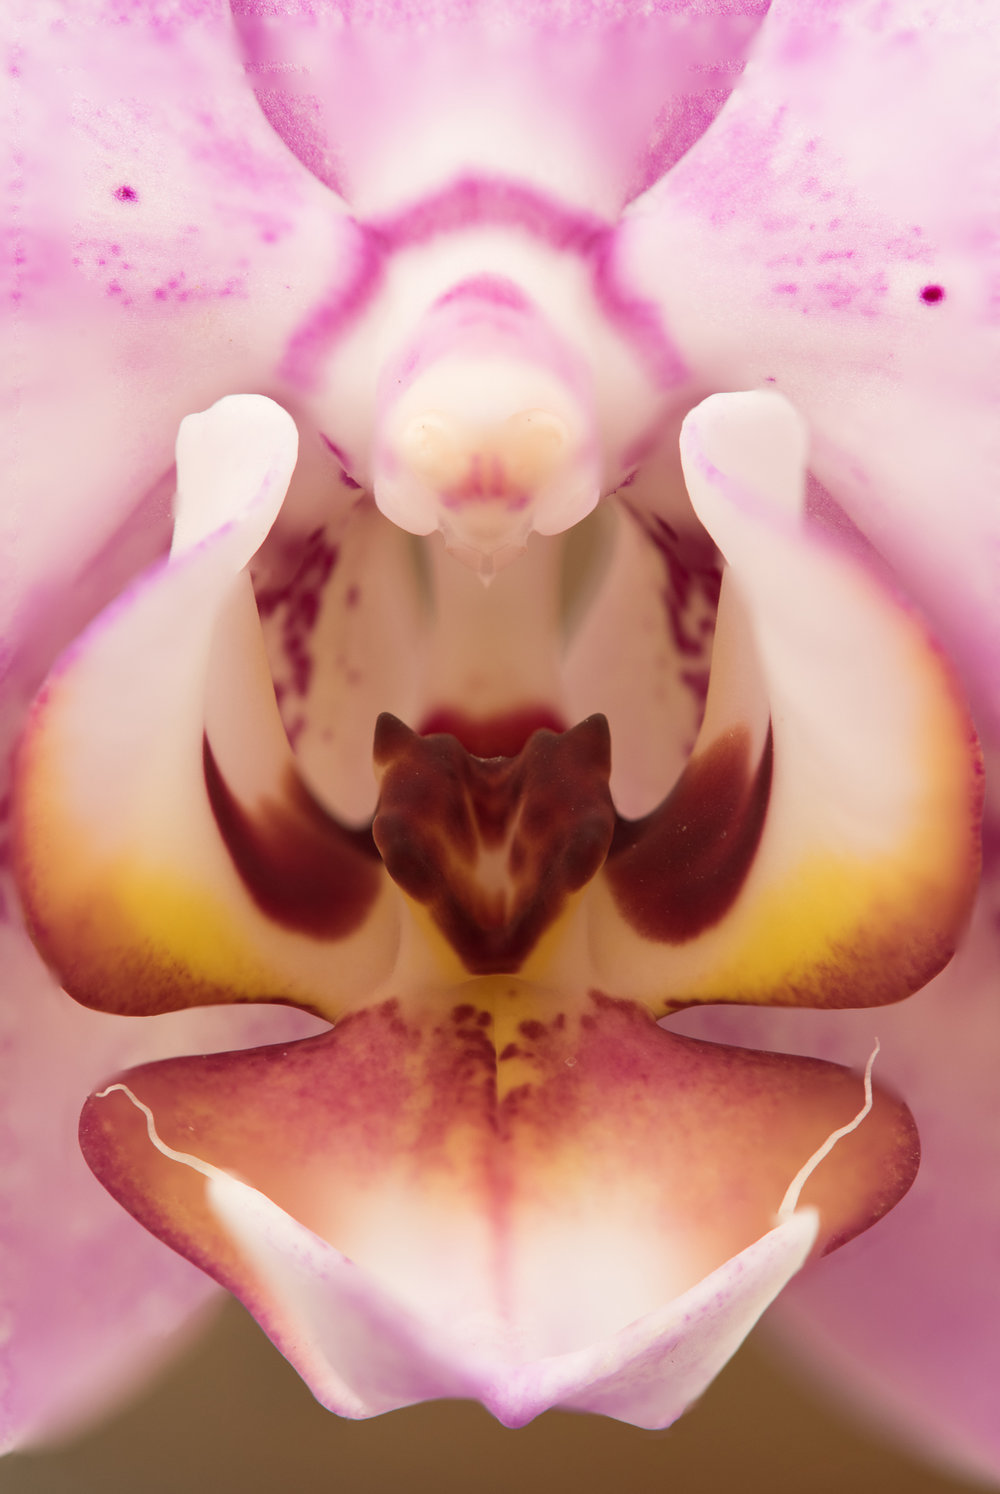 Orchid... Focus Stacking  Nikon D810 and Tamron 180mm f/3.5 macro